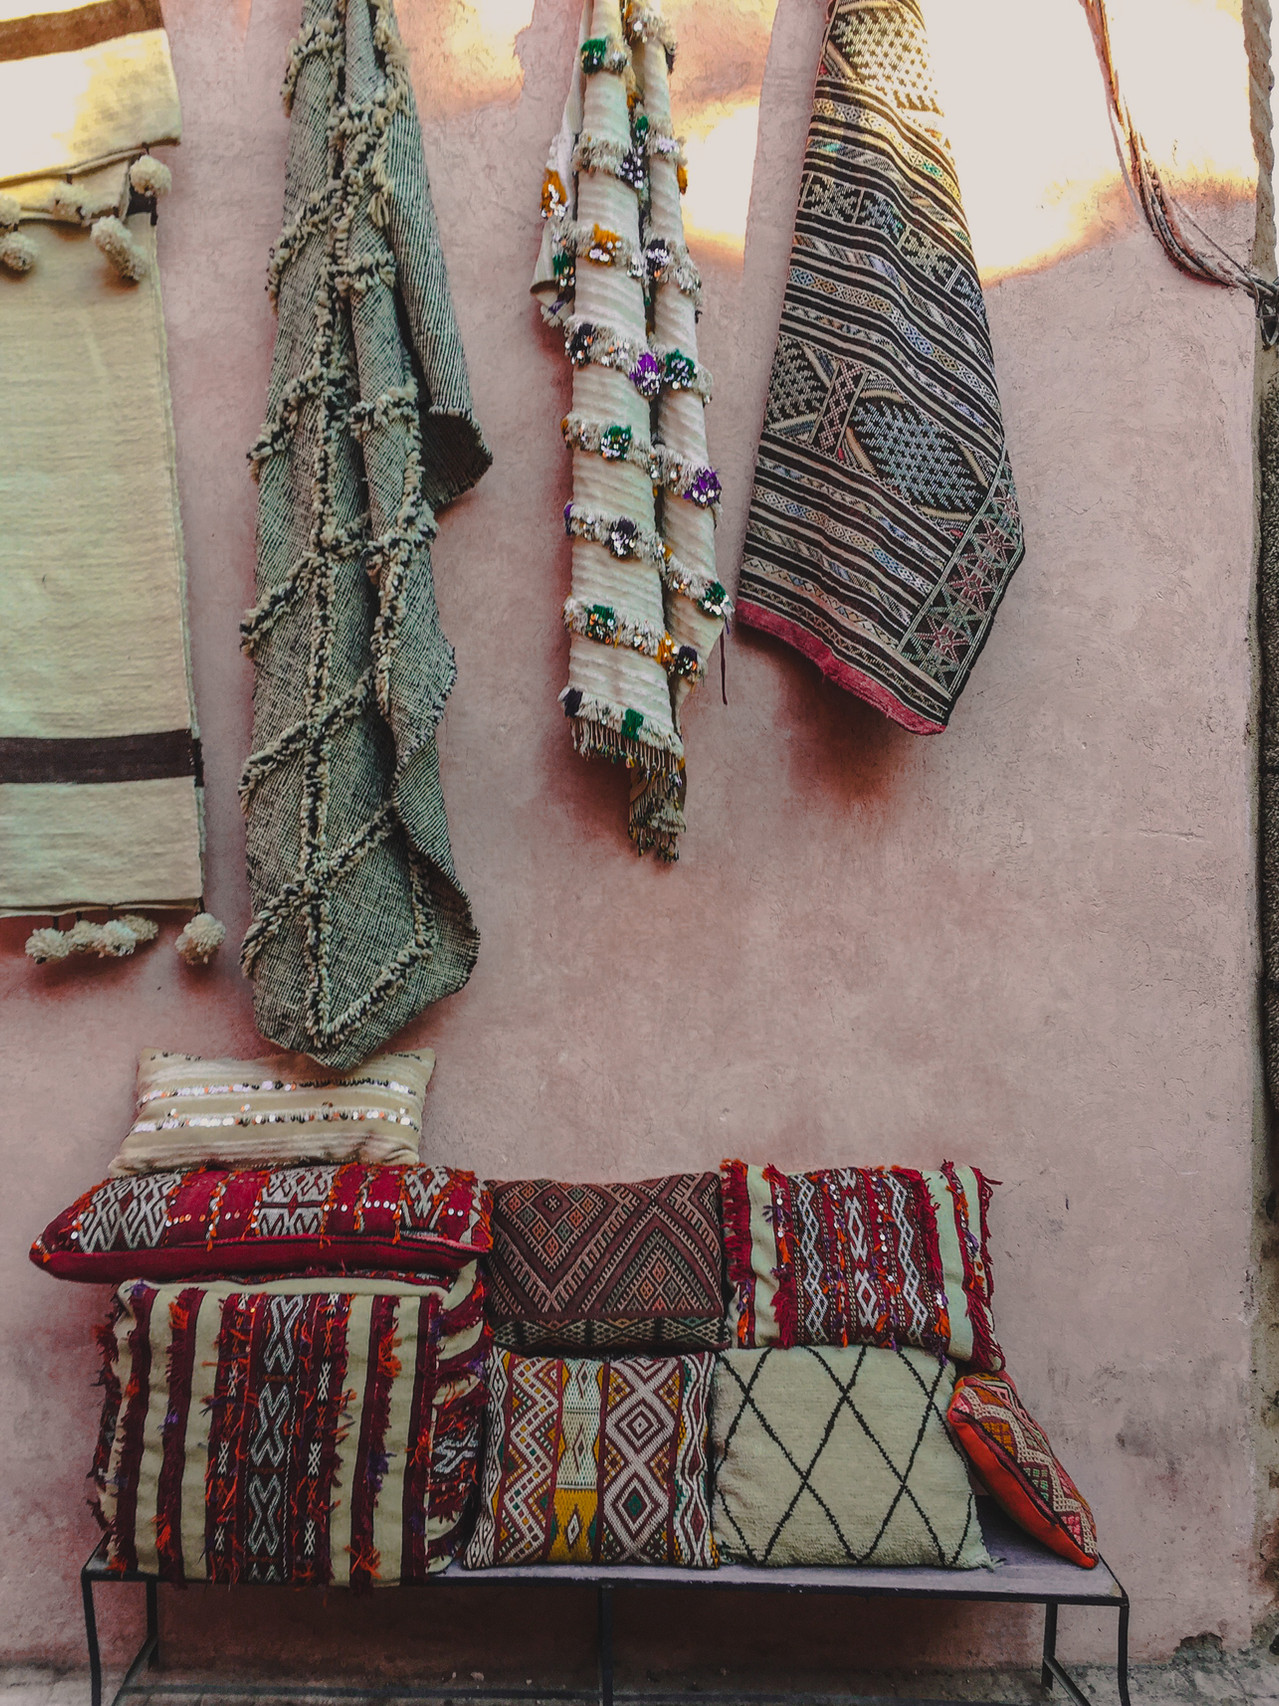 Medina corners: Embroidered Moroccan rugs and cushion covers | RollingBear Travels